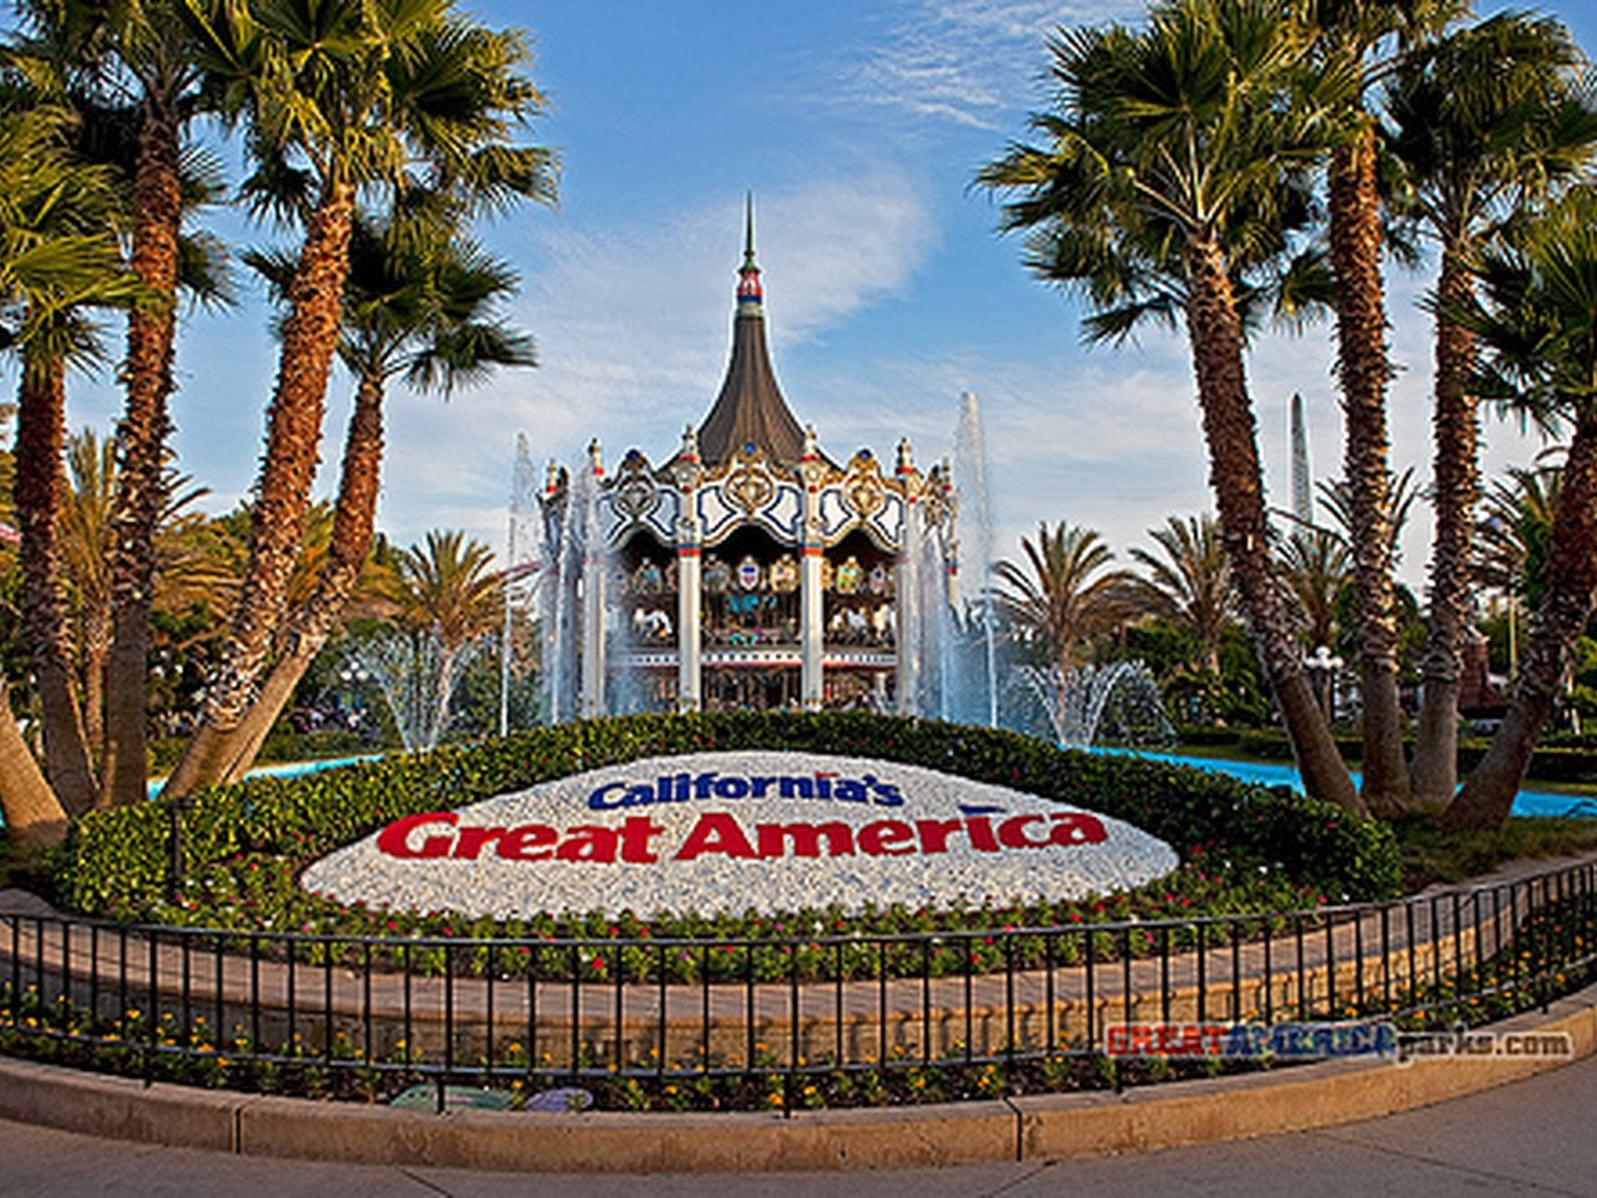 enterance to california's great america